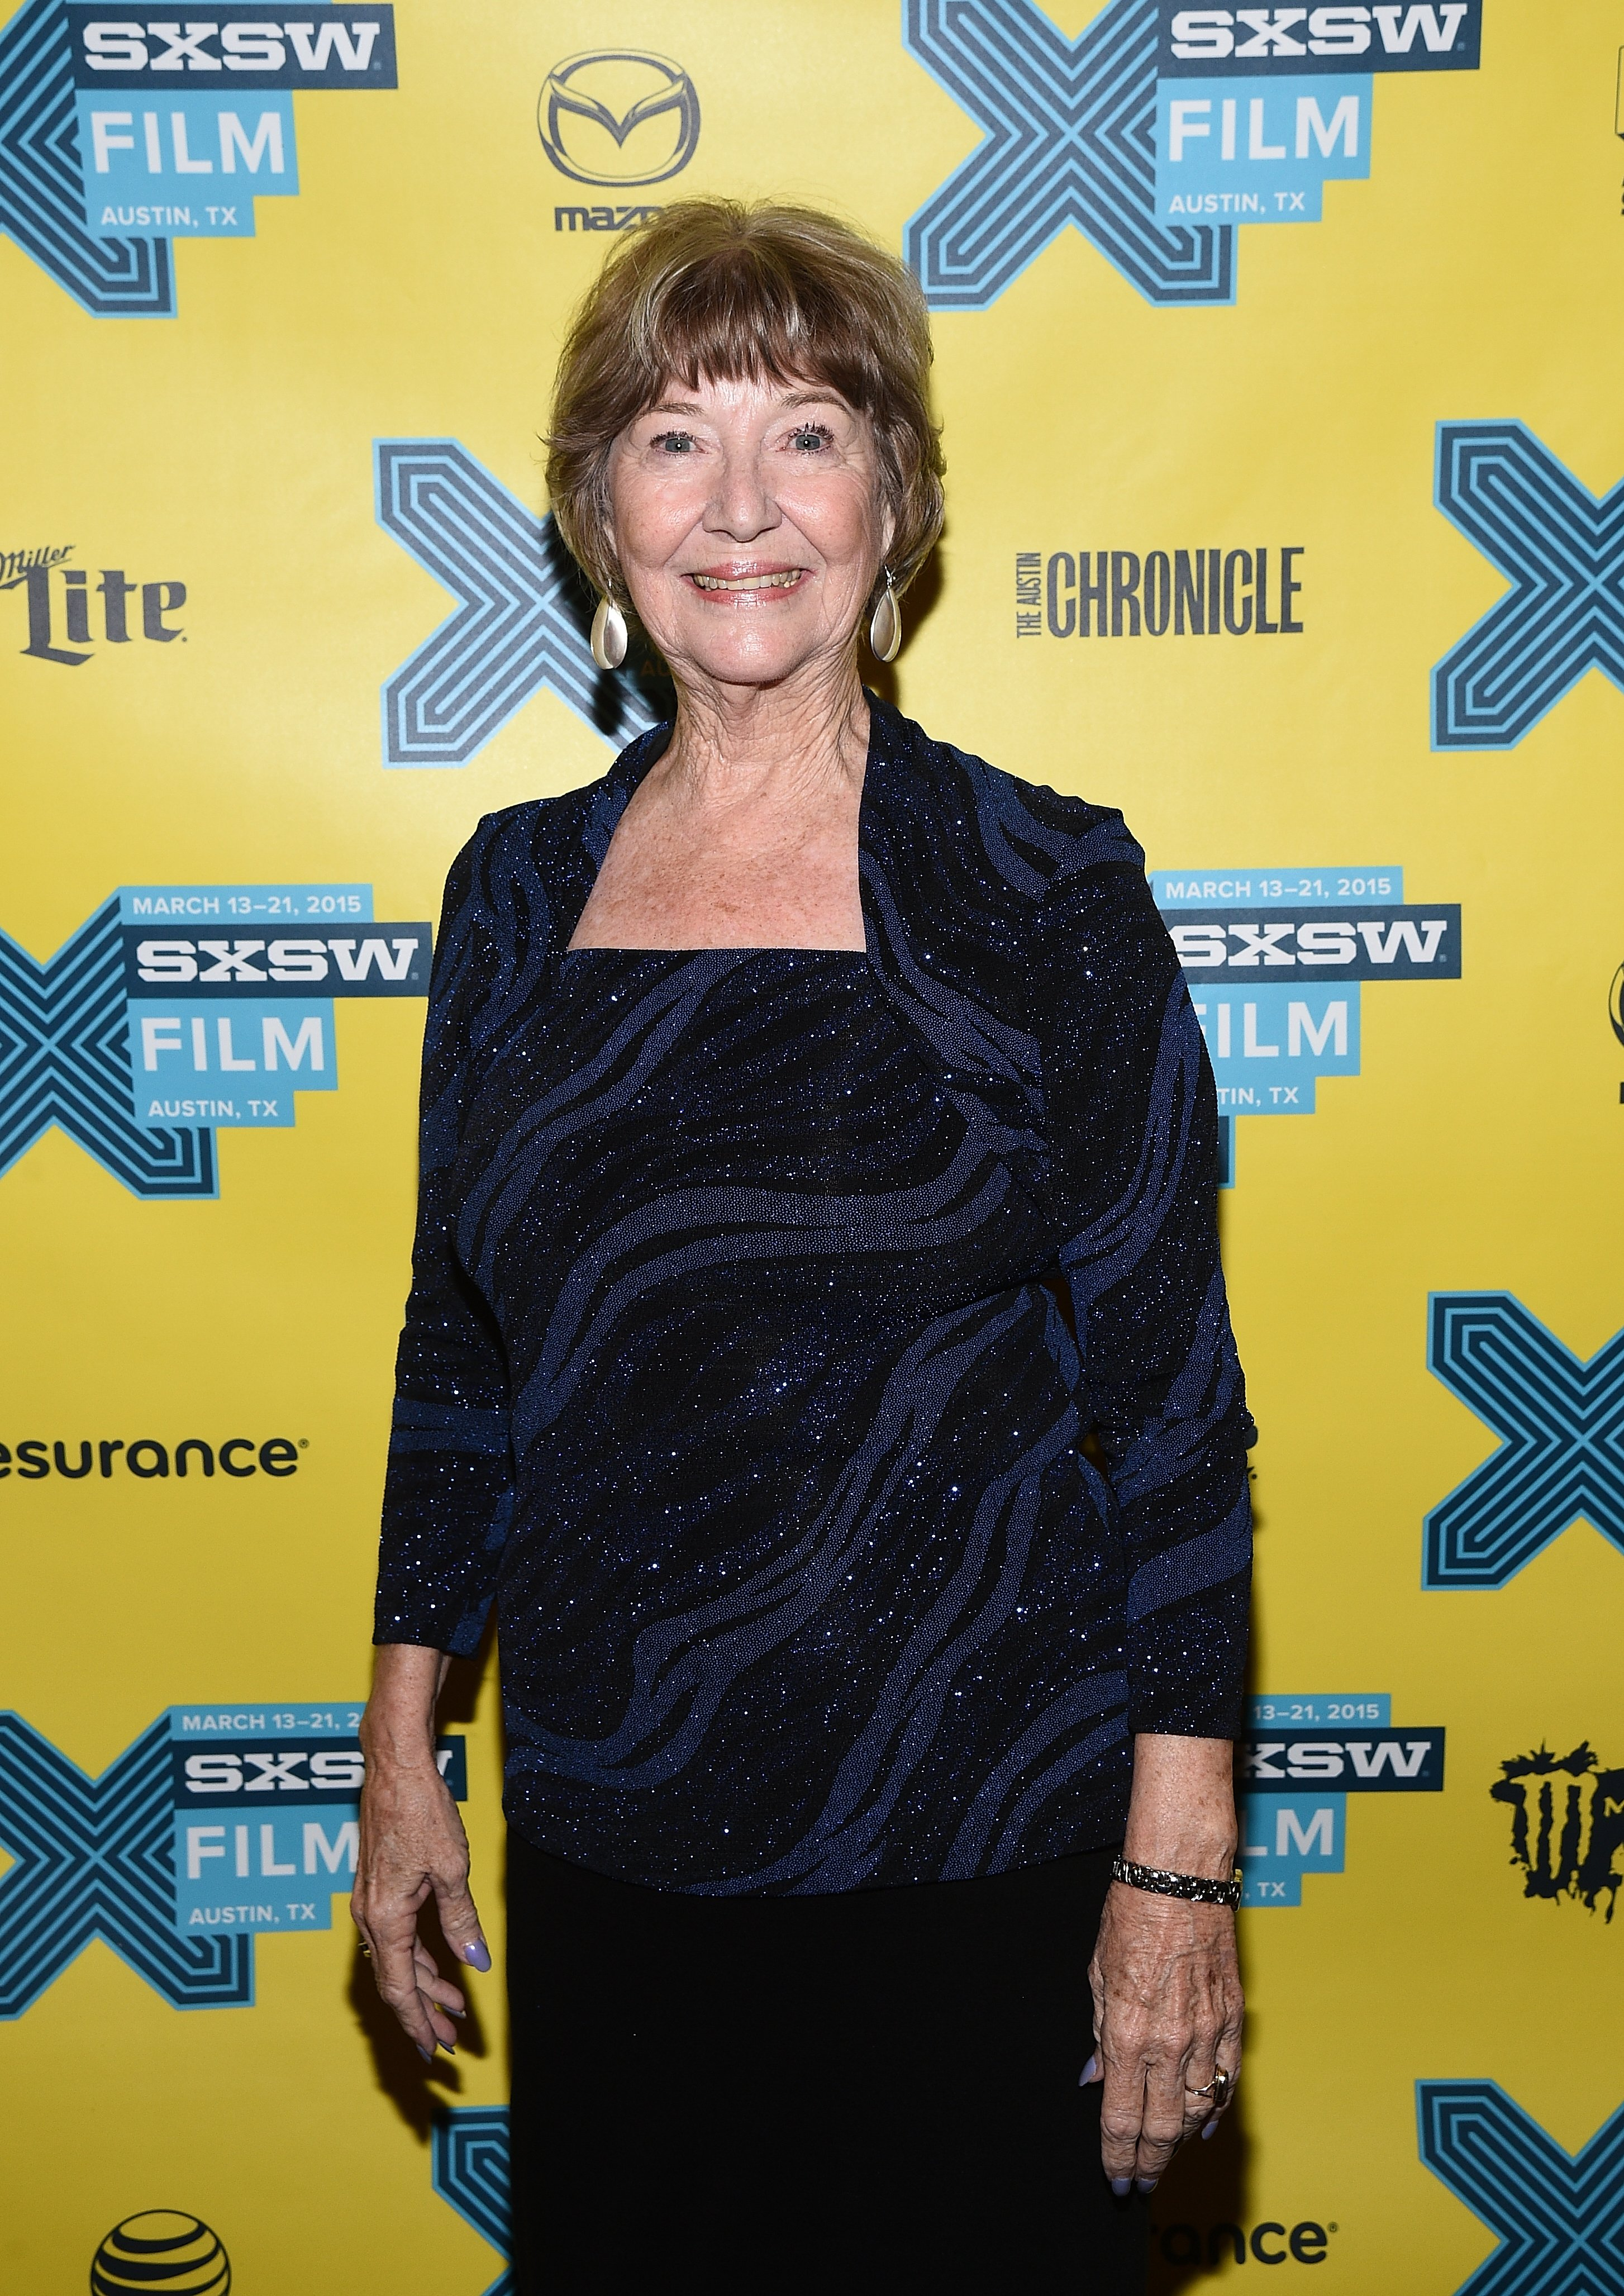 """Charlotte Stewart at the screening of """"Human Highway"""" during the 2015 SXSW Music, Film + Interactive Festival 